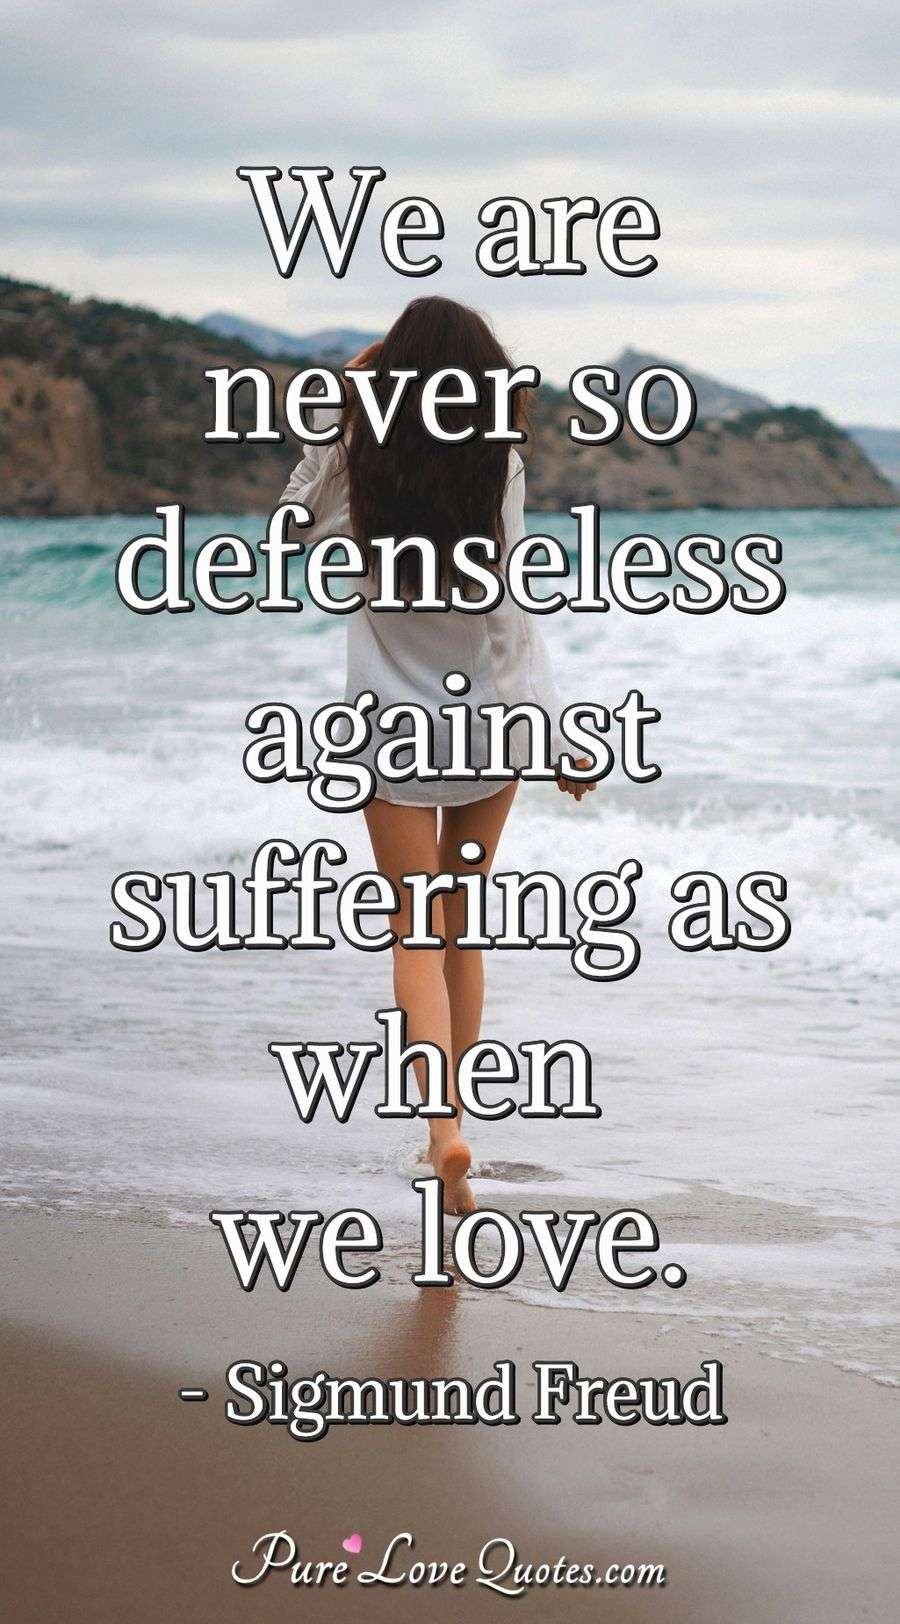 We are never so defenseless against suffering as when we love. - Sigmund Freud